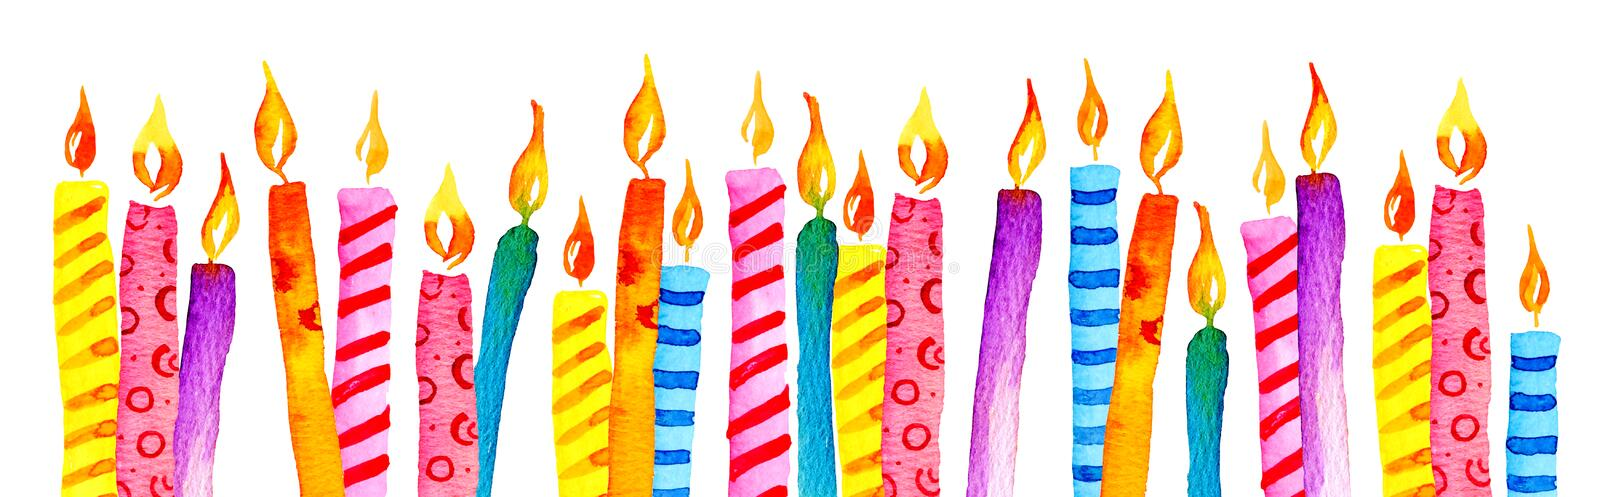 Stylized birthday candles in a row. Hand drawn cartoon watercolor sketch illustration vector illustration